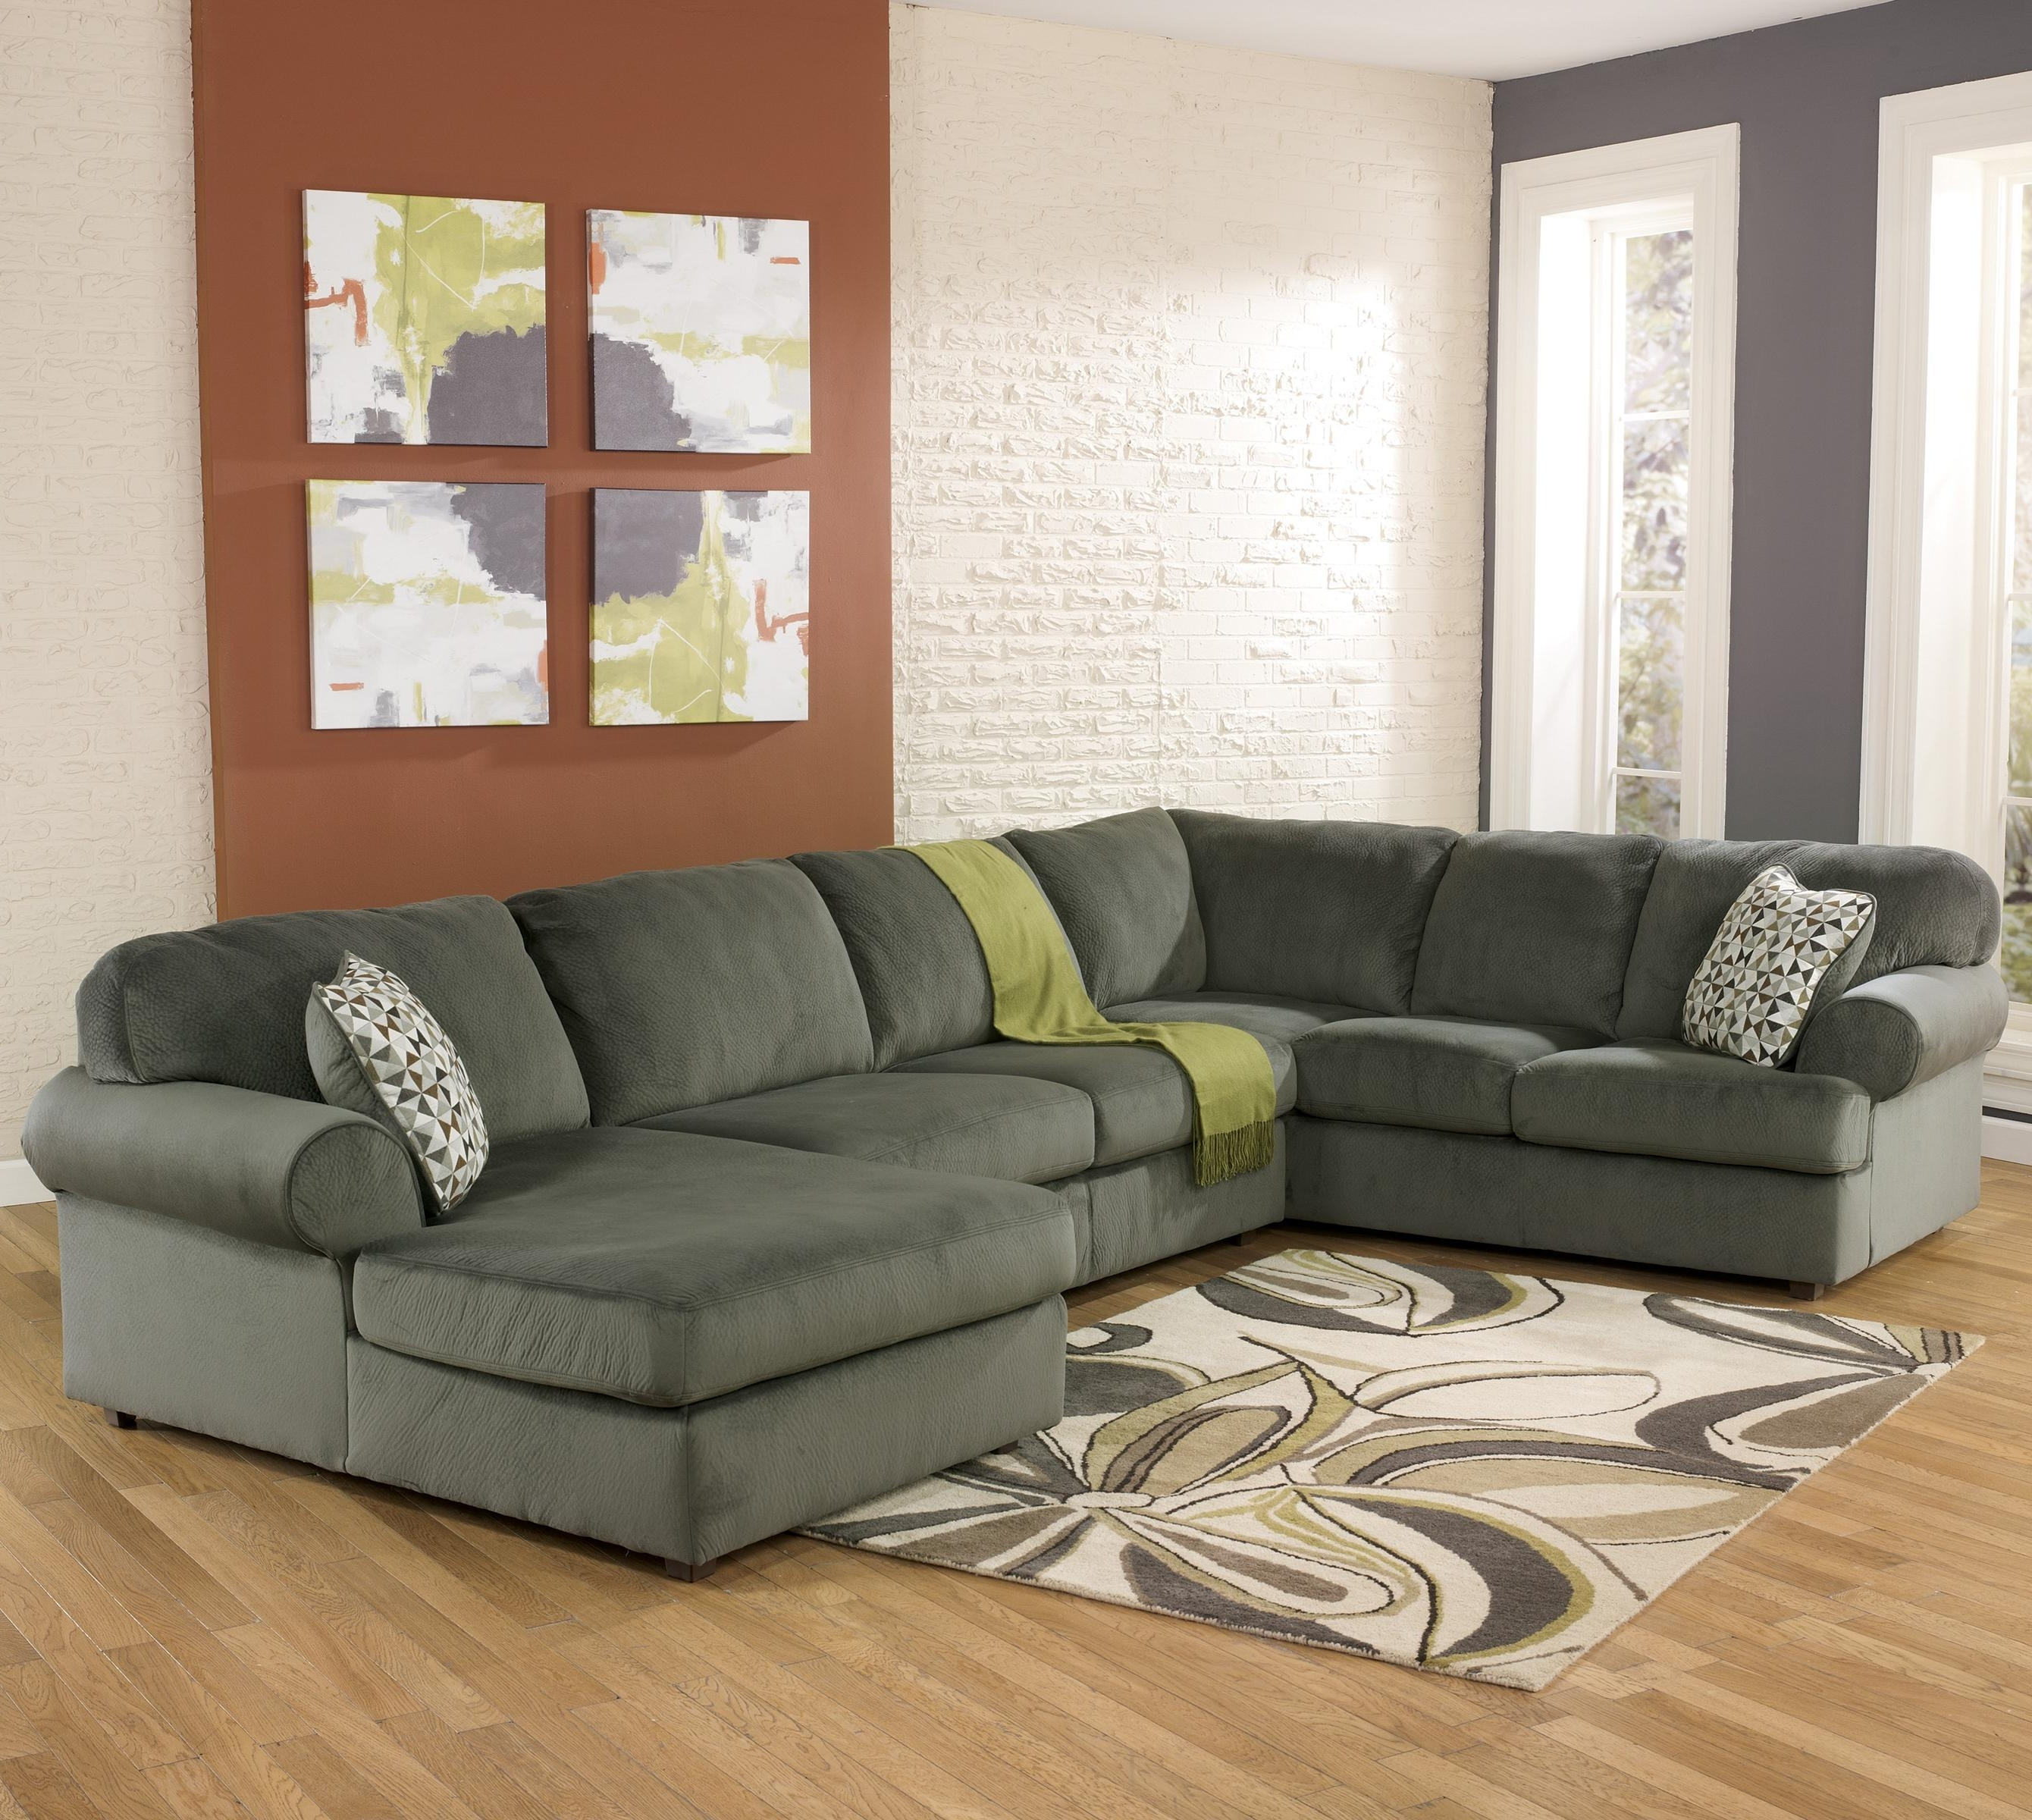 2019 Lancaster Pa Sectional Sofas Inside Casual Sectional Sofa With Right Chaisesignature Design (View 2 of 20)